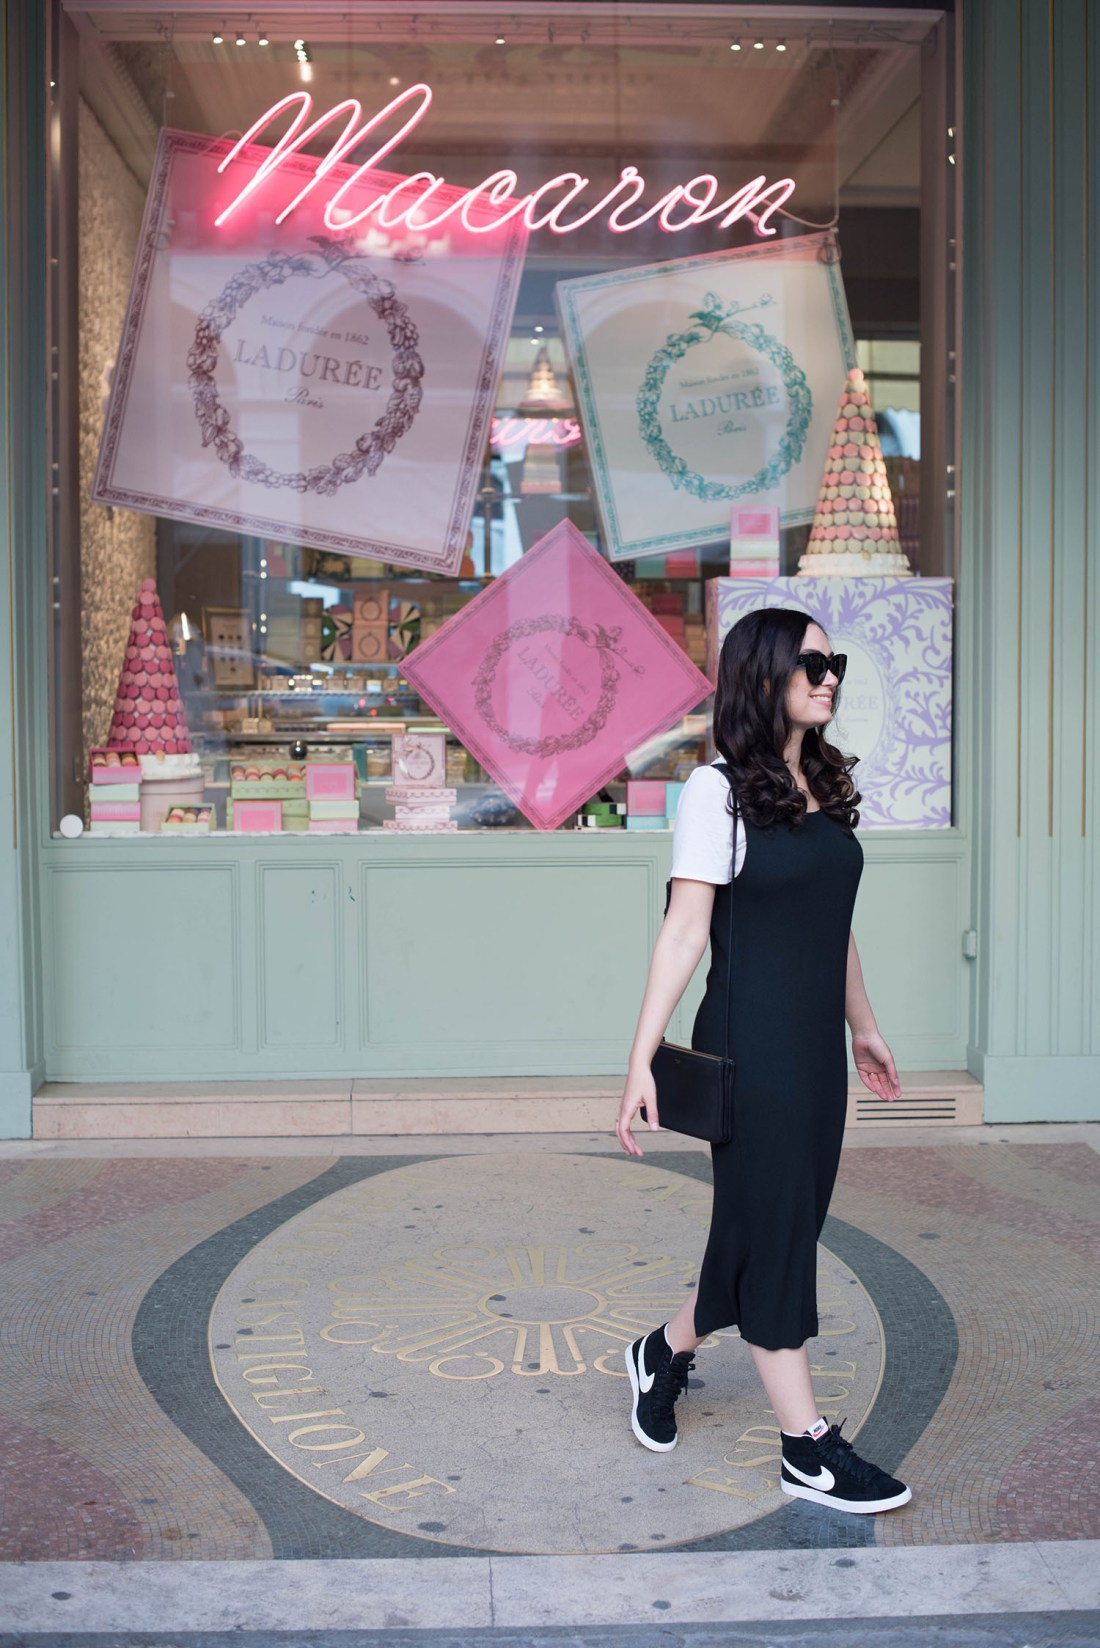 Photo of lifestyle blogger Cee Fardoe at Laduree in Paris, wearing a black pinafore dress and Nike sneakers